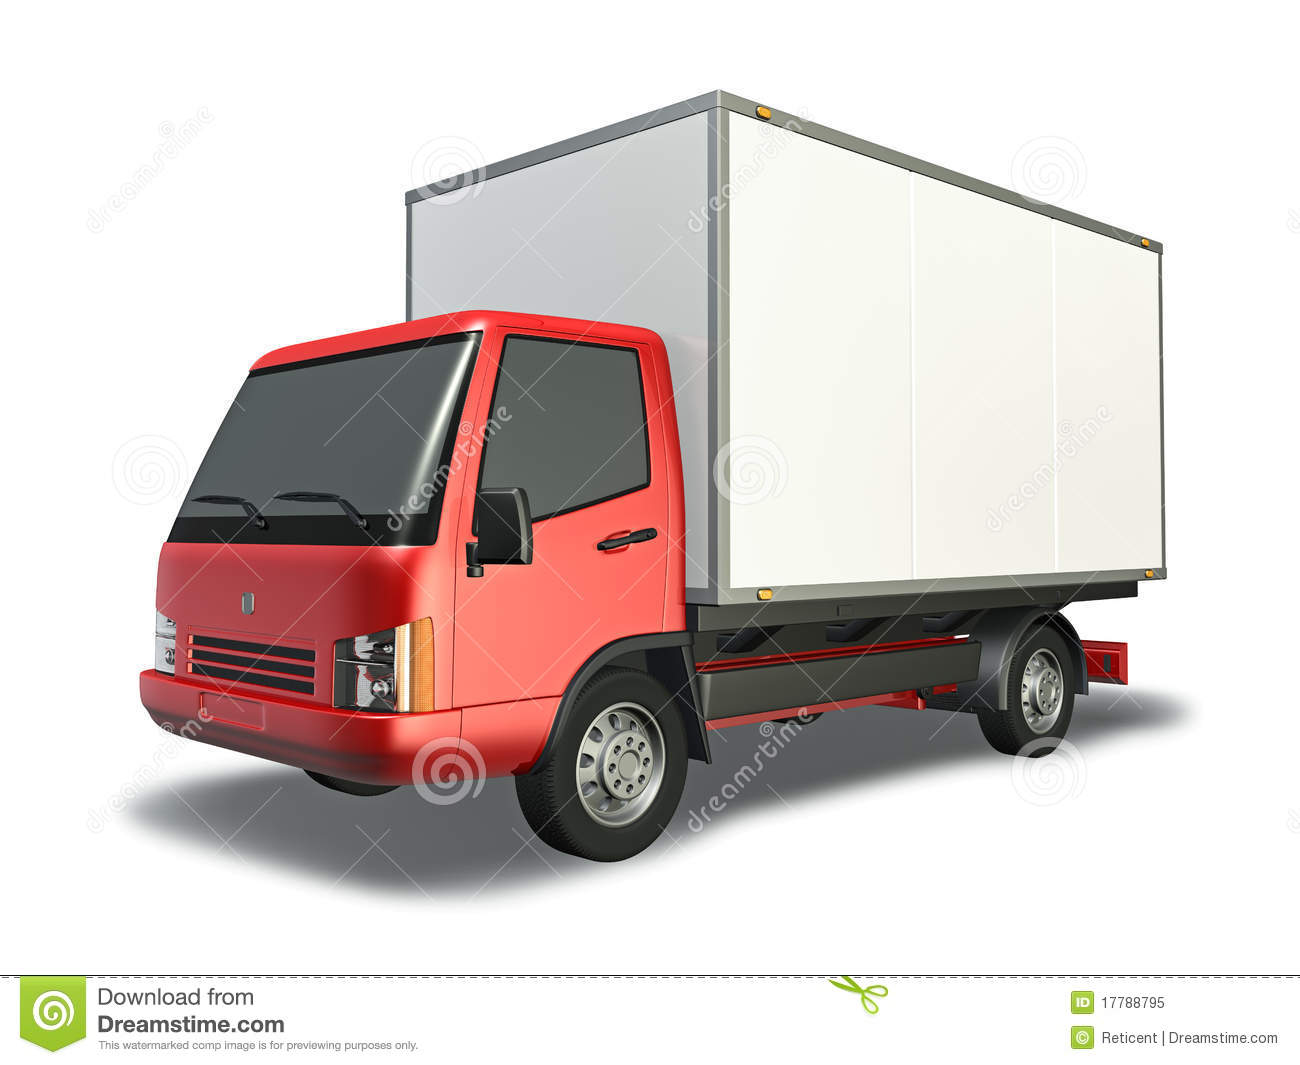 Small Truck Royalty Free Stock Photo - Image: 17788795